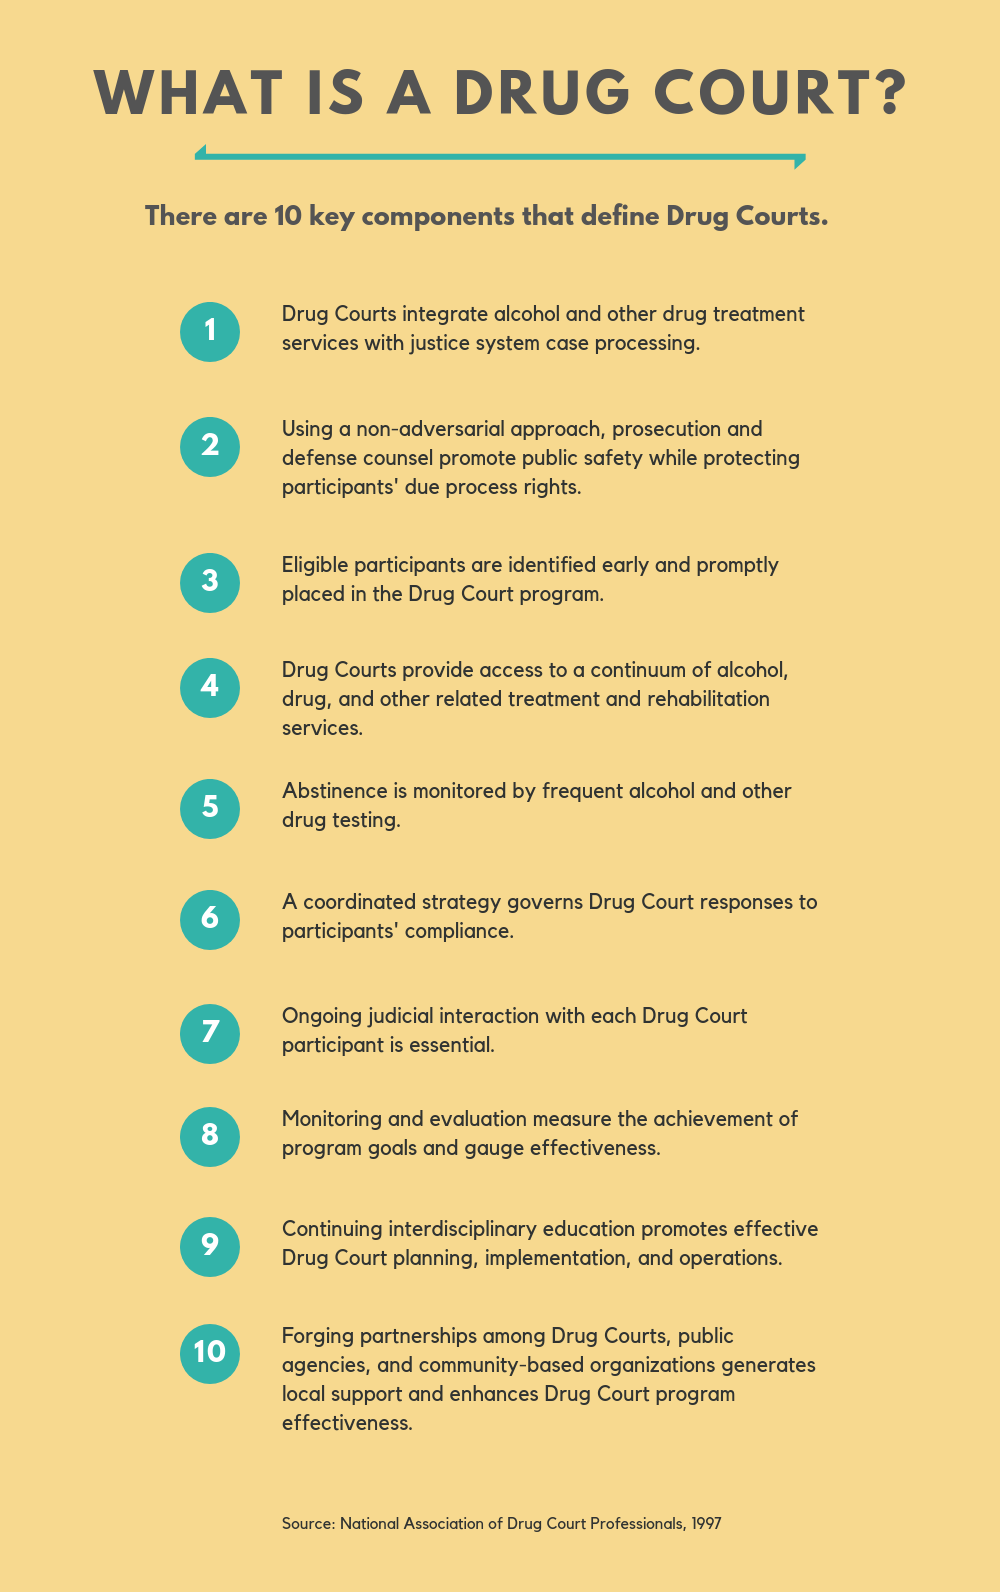 What is a Drug Court, there are 10 key components that define drug courts.